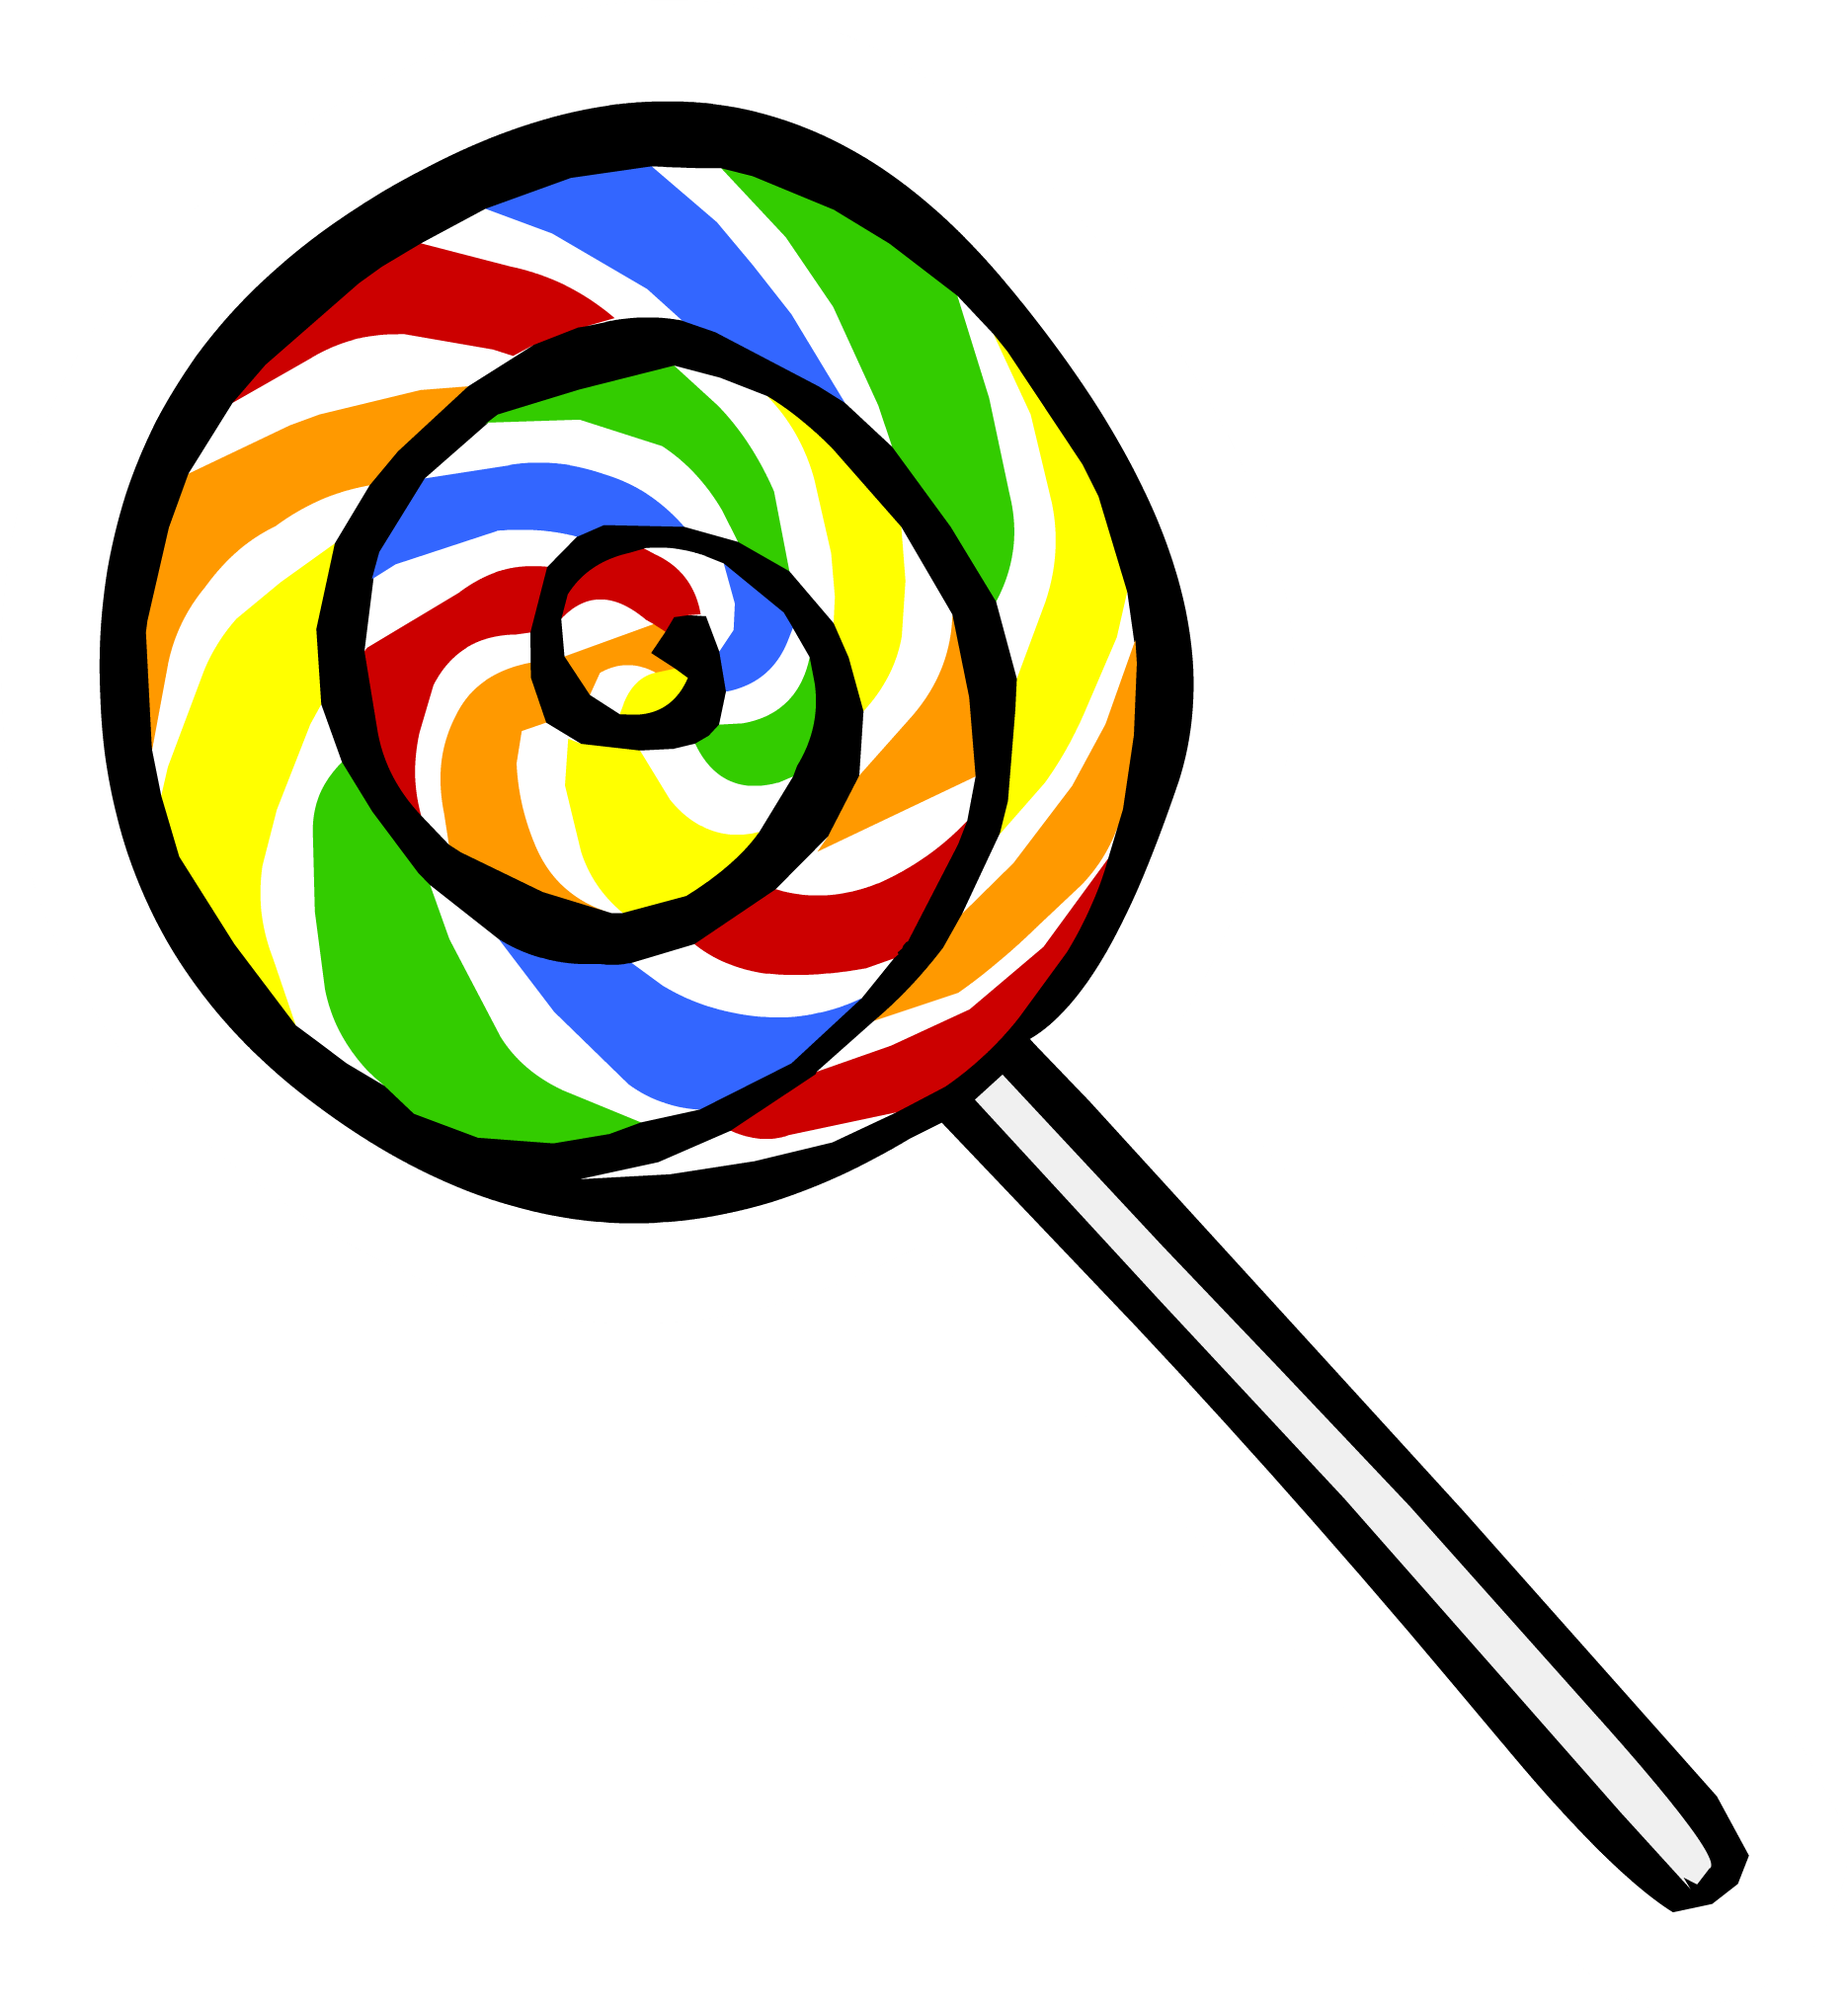 Lollipop clipart lollipop tree. Migoy bukococonut coconut is